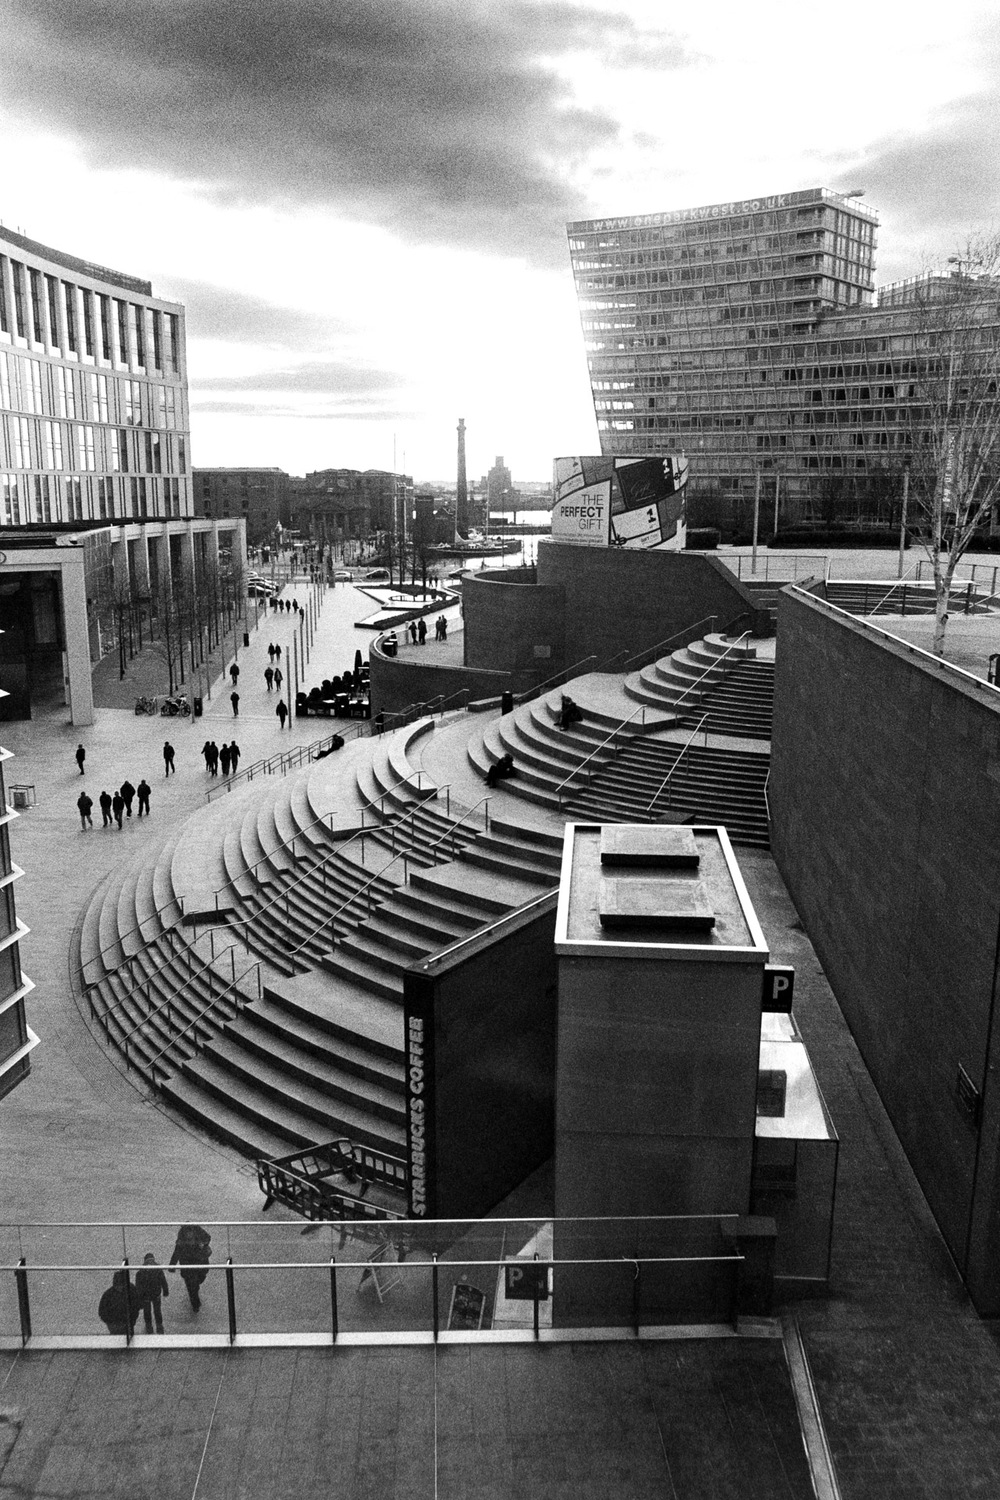 Liverpool 2013 (7) Liverpool ONE Staircase.jpg